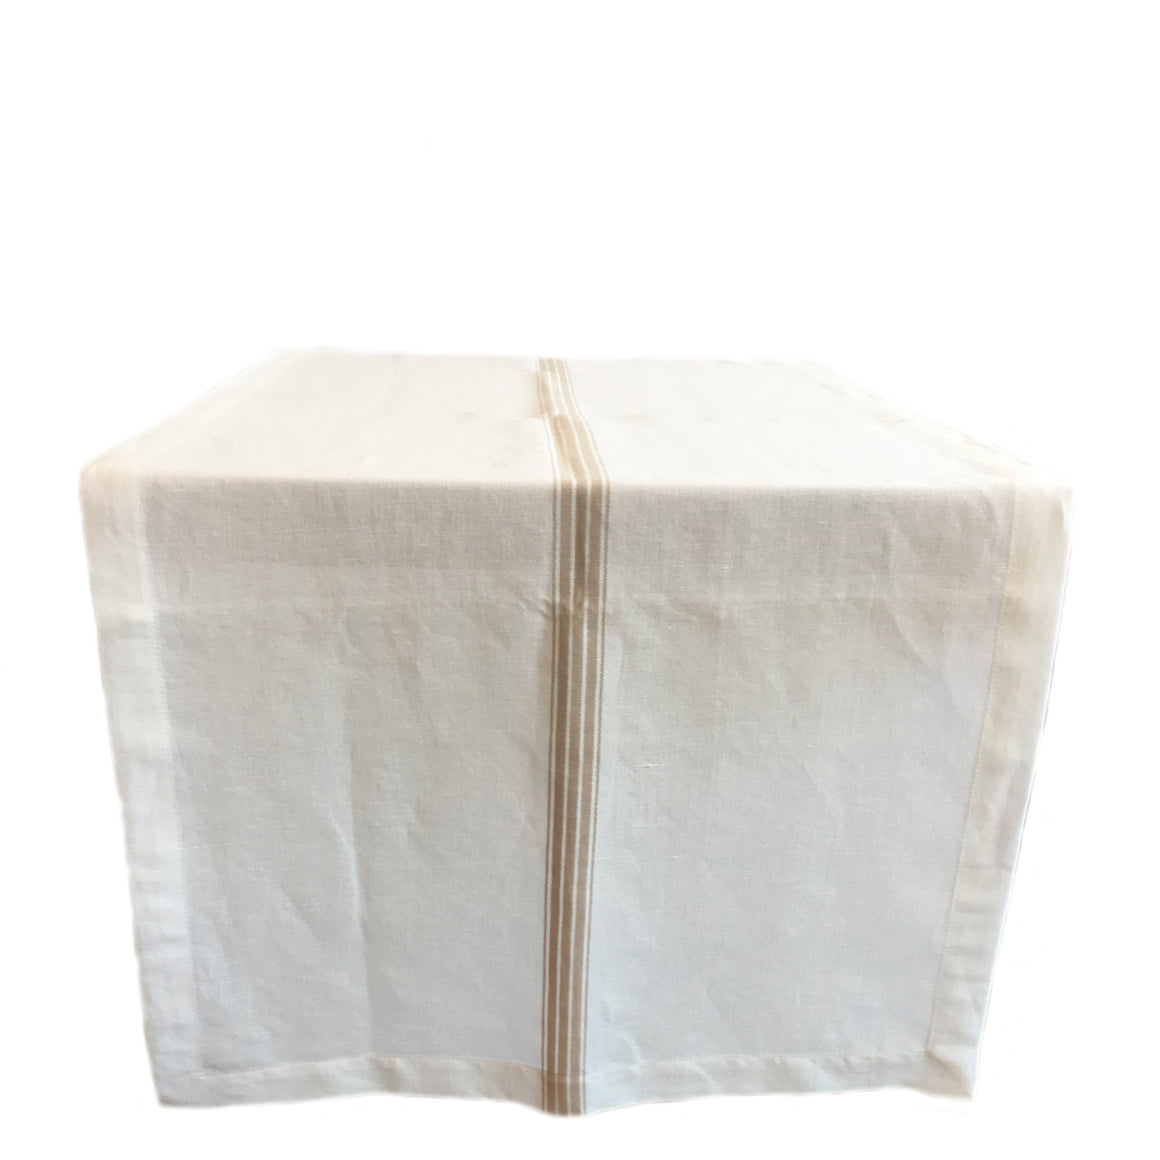 woven linen table runner - white and taupe